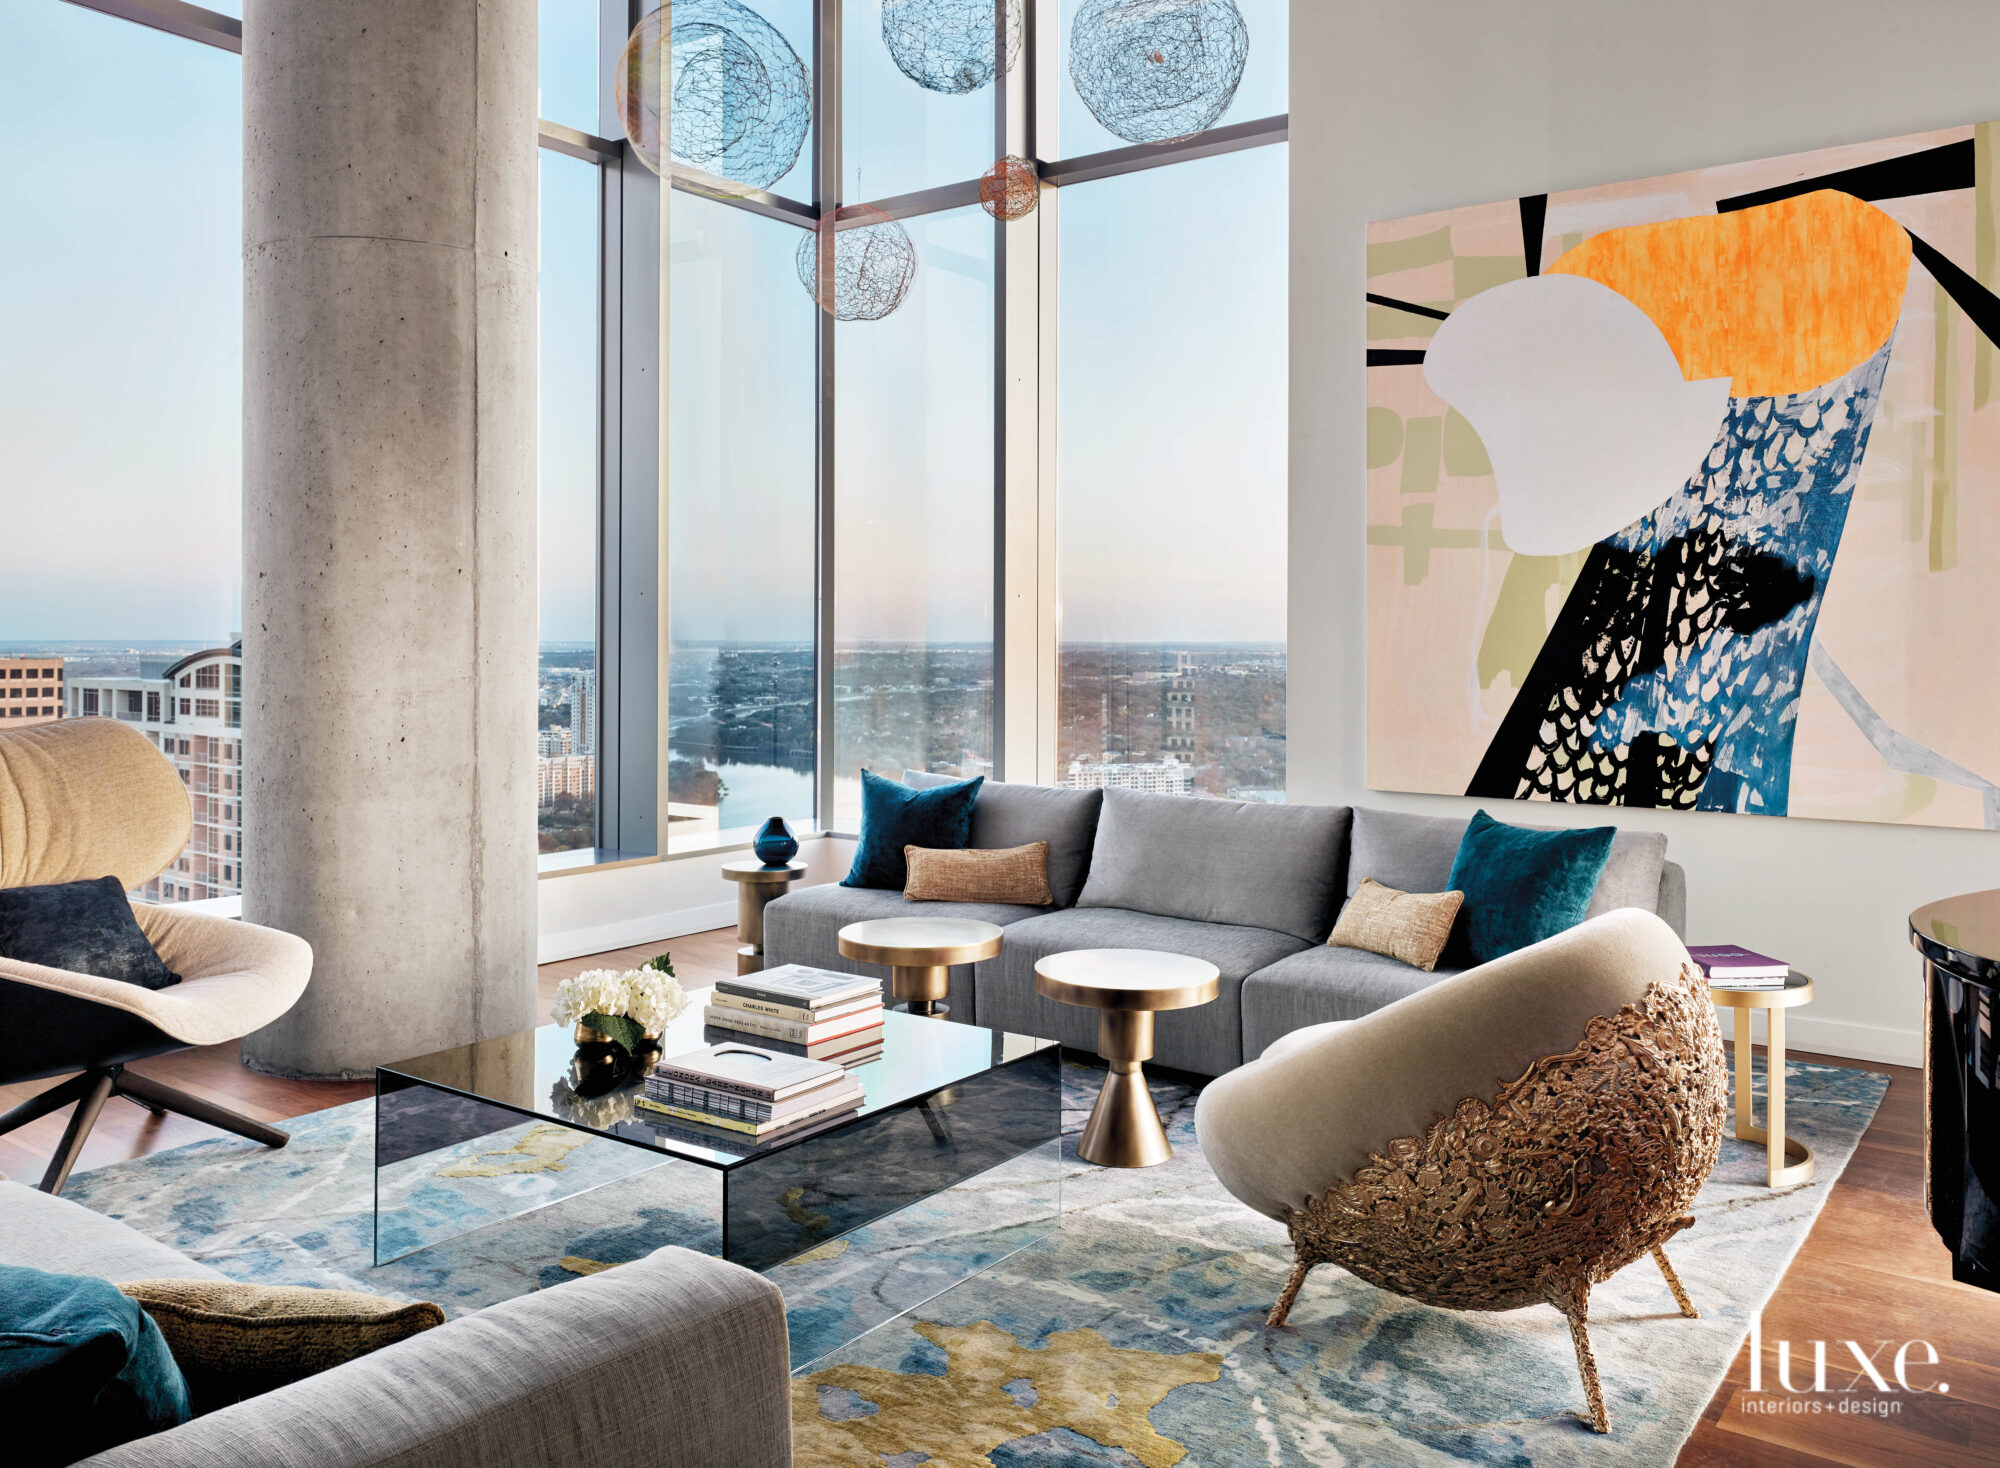 Living room of a high-rise...